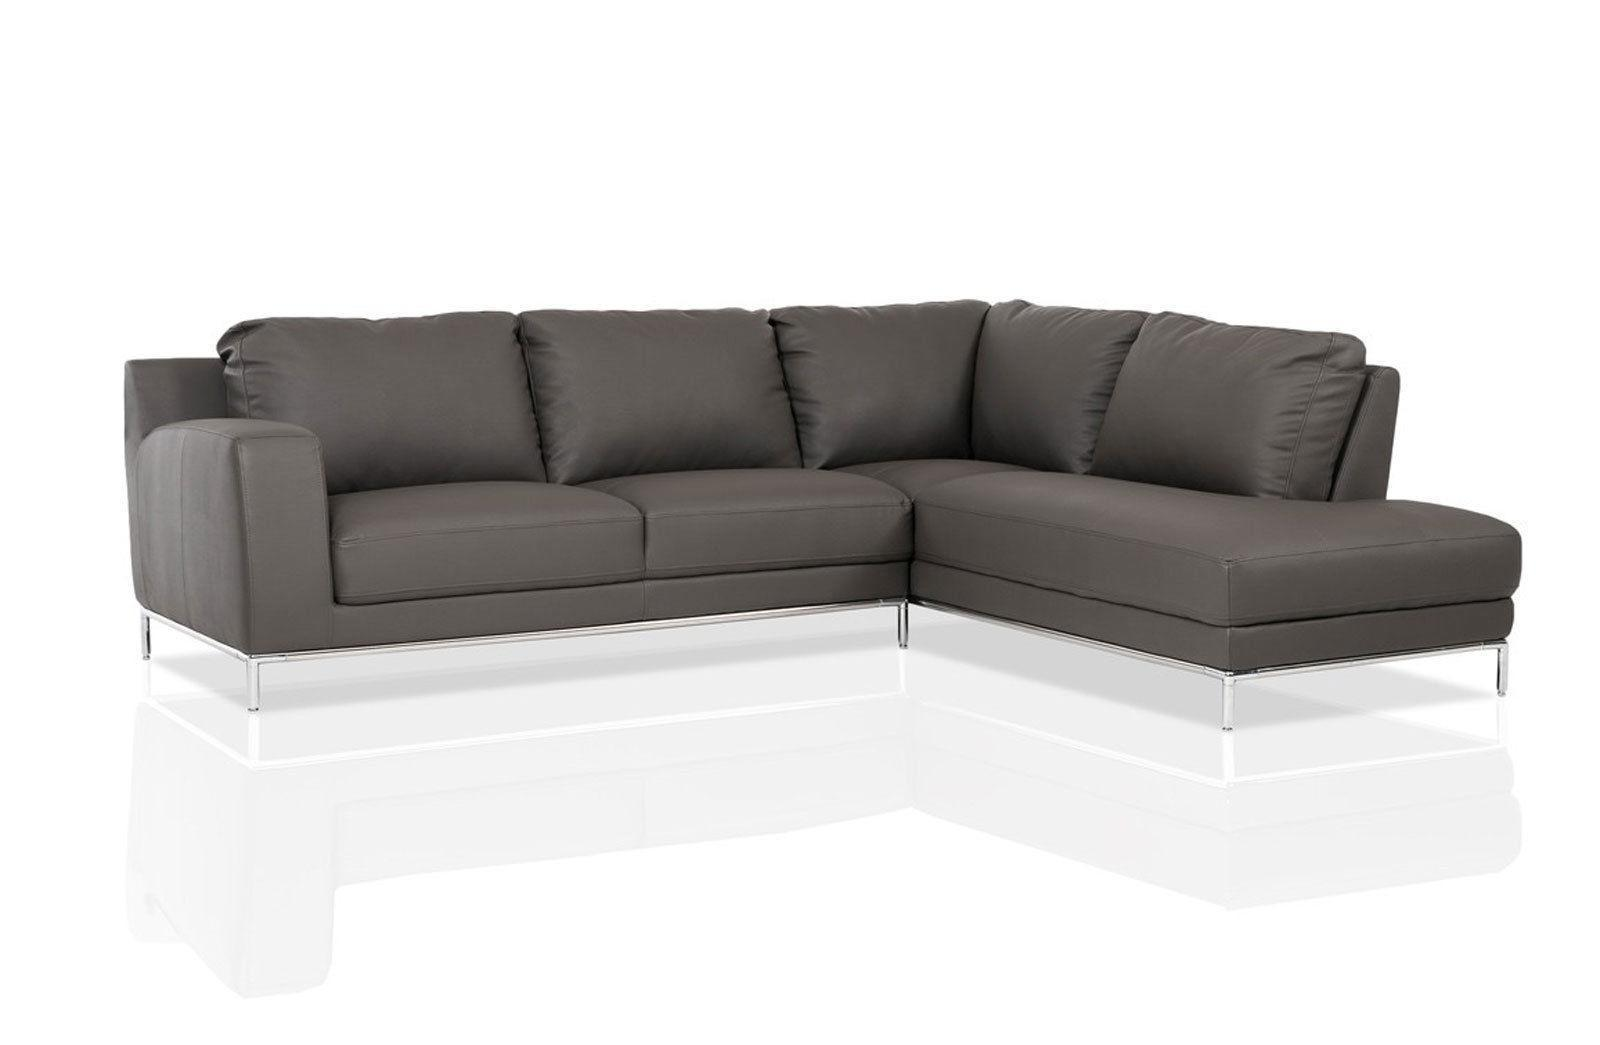 Used, BELLEVUE NEW Modern Gray Eco Leather Living Room Set Sofa Couch Chaise Sectional for sale  USA